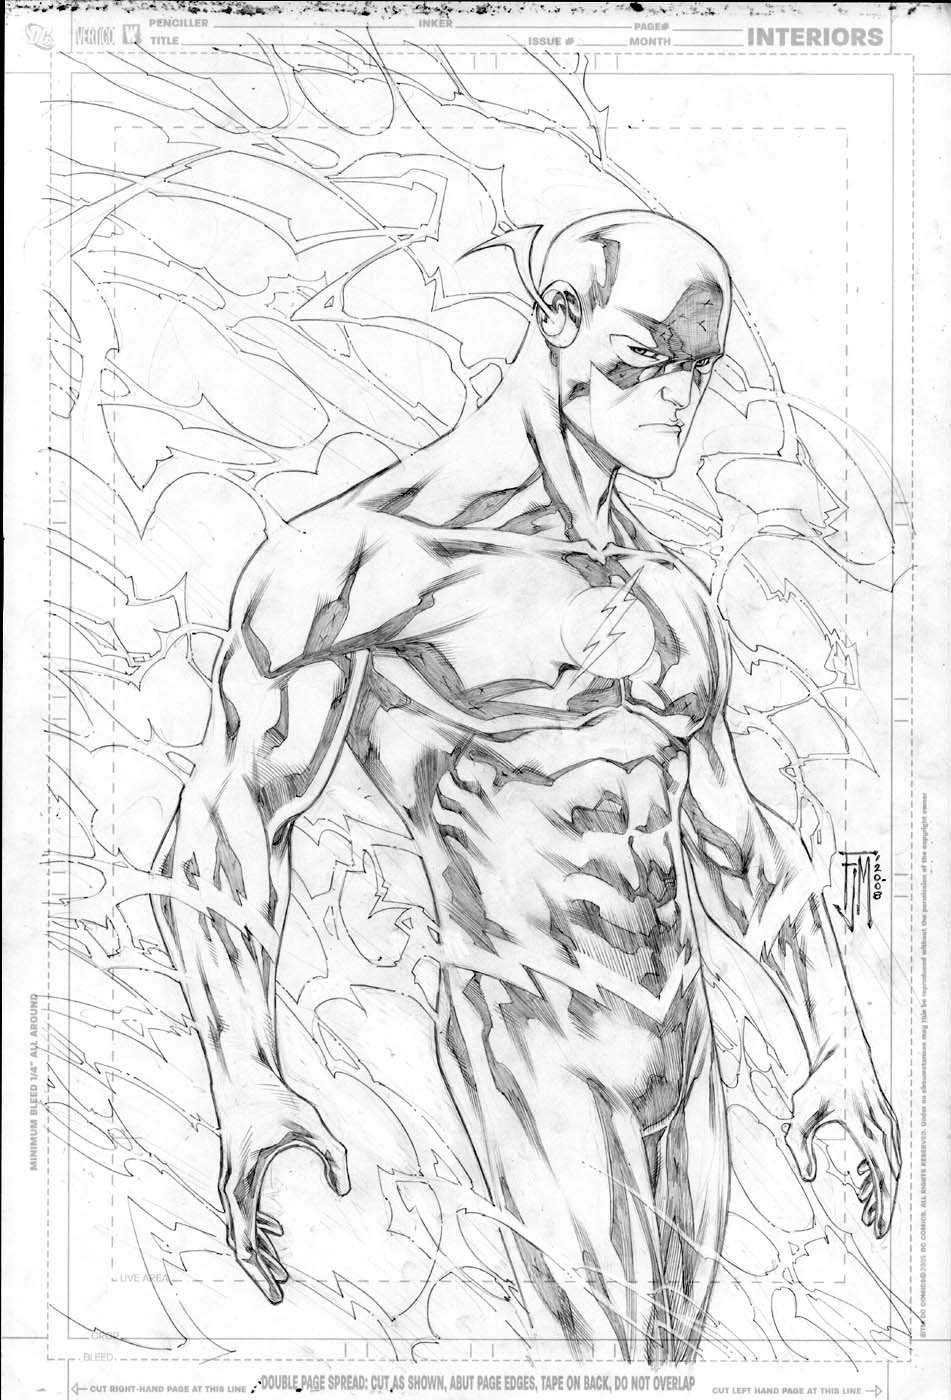 FLASH COLORING SUPER HERO « Free Coloring Pages